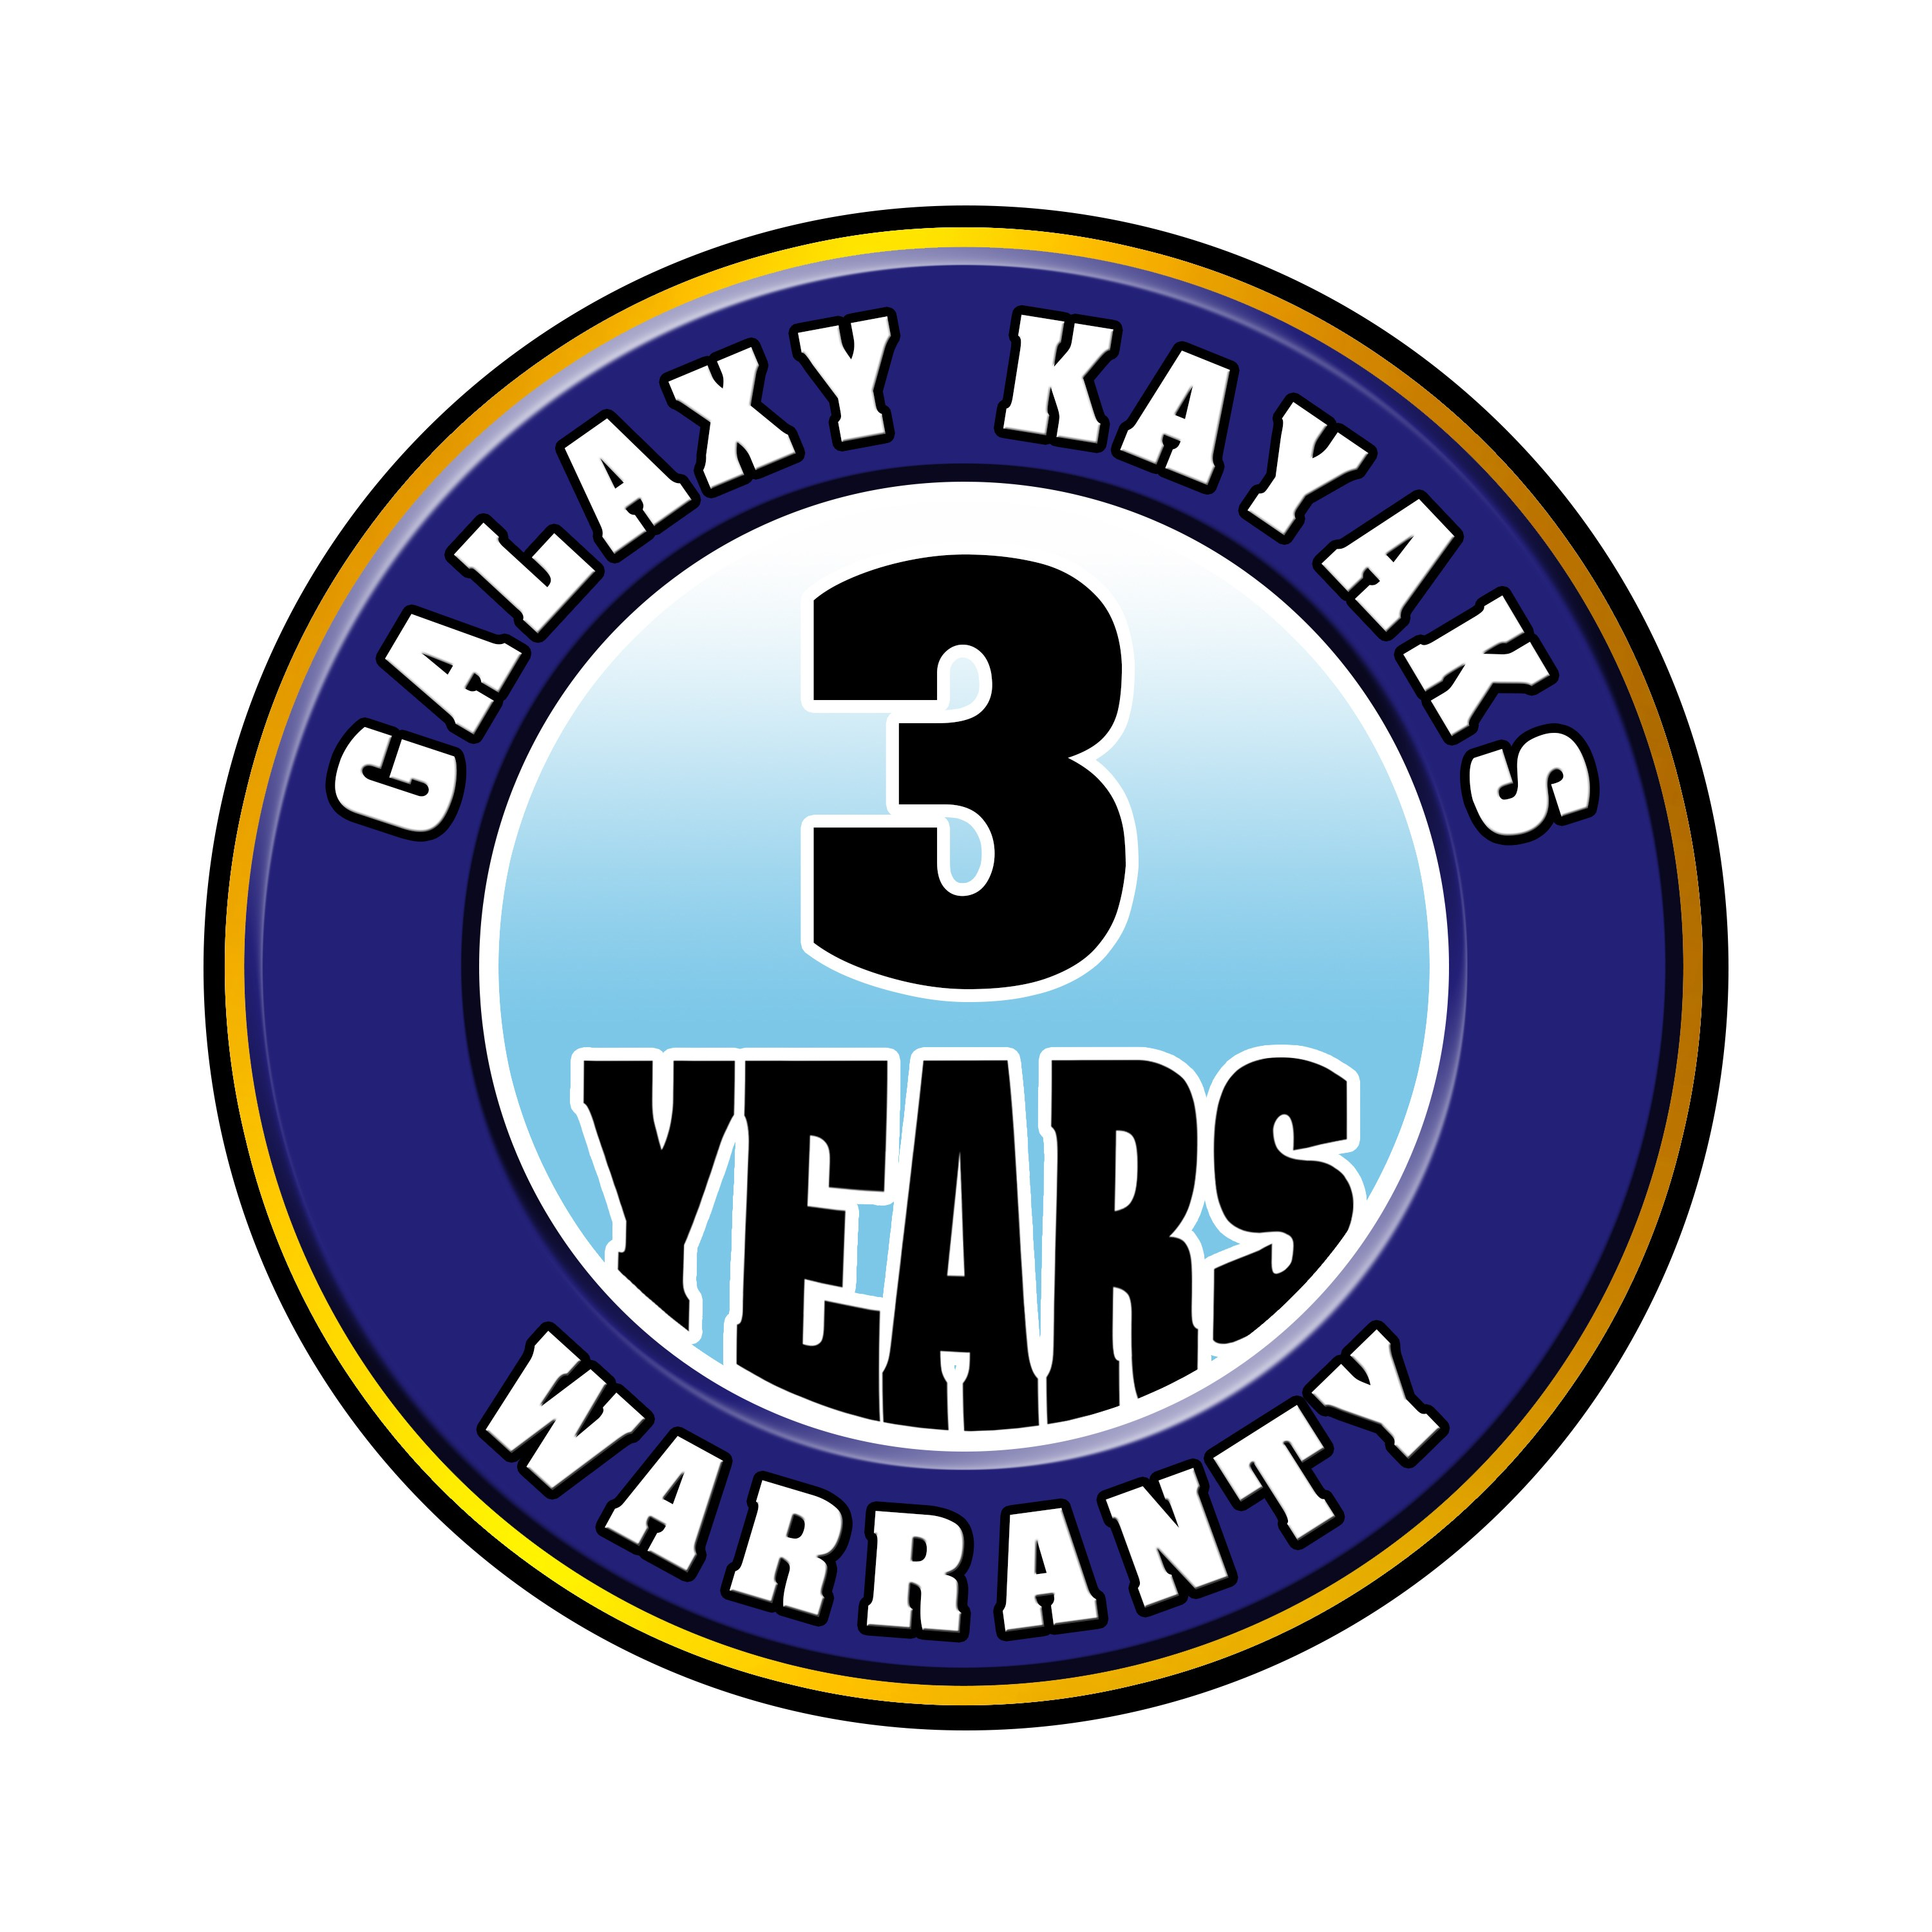 Galaxy Kayaks 3 Years Warranty